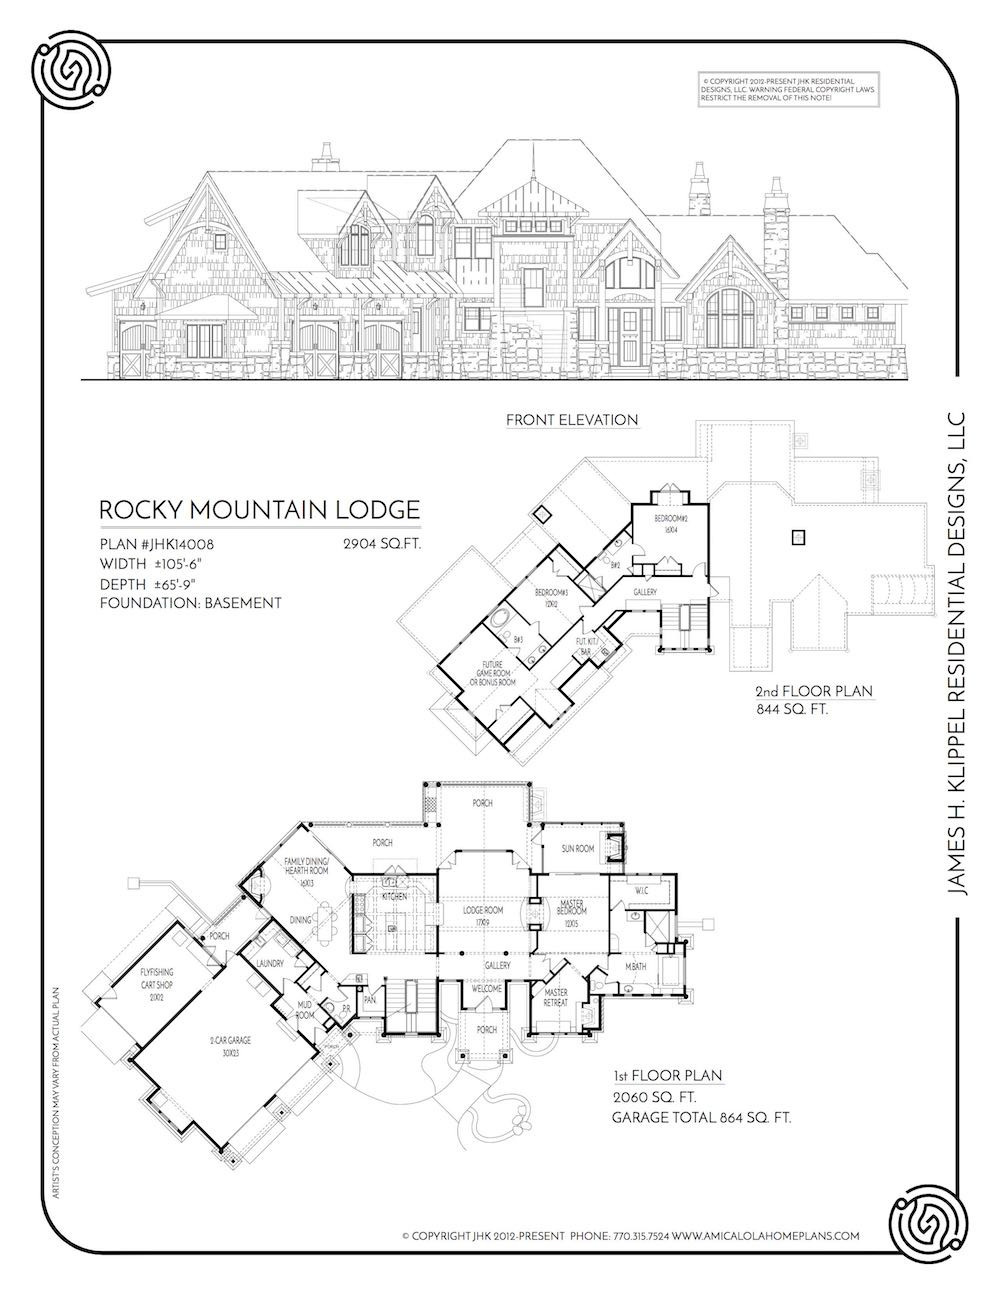 Rocky Mountain Lodge Rustic Mountain Homes Amicalola Home Plans